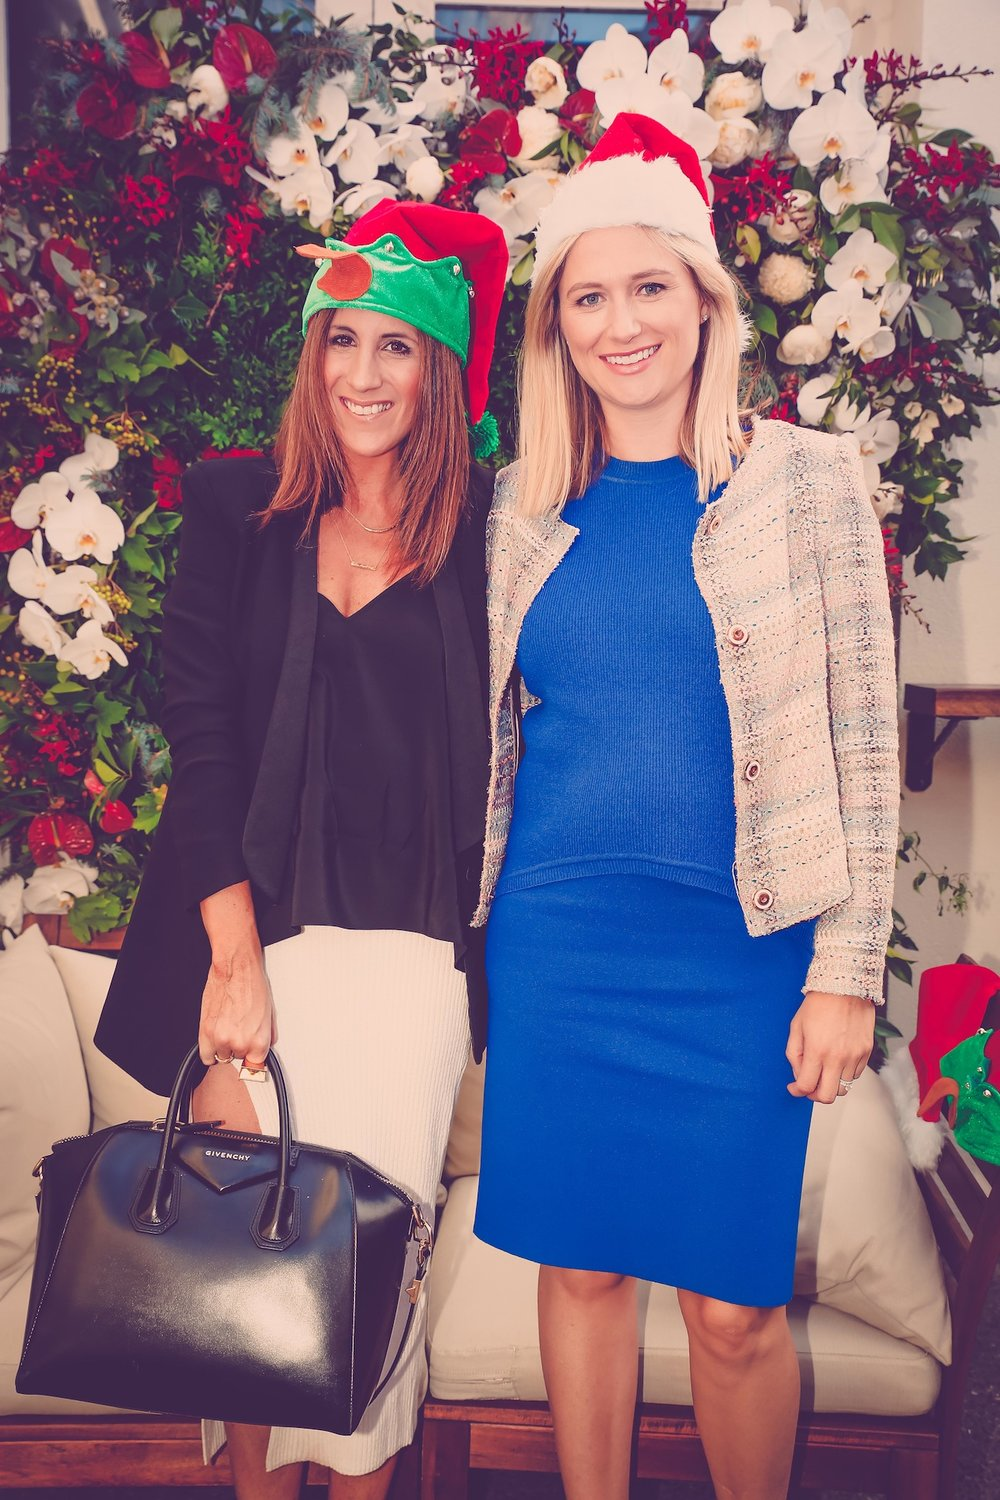 toko-melbourne-christmas-party-lana-wilkinson-lucy-mills.jpg